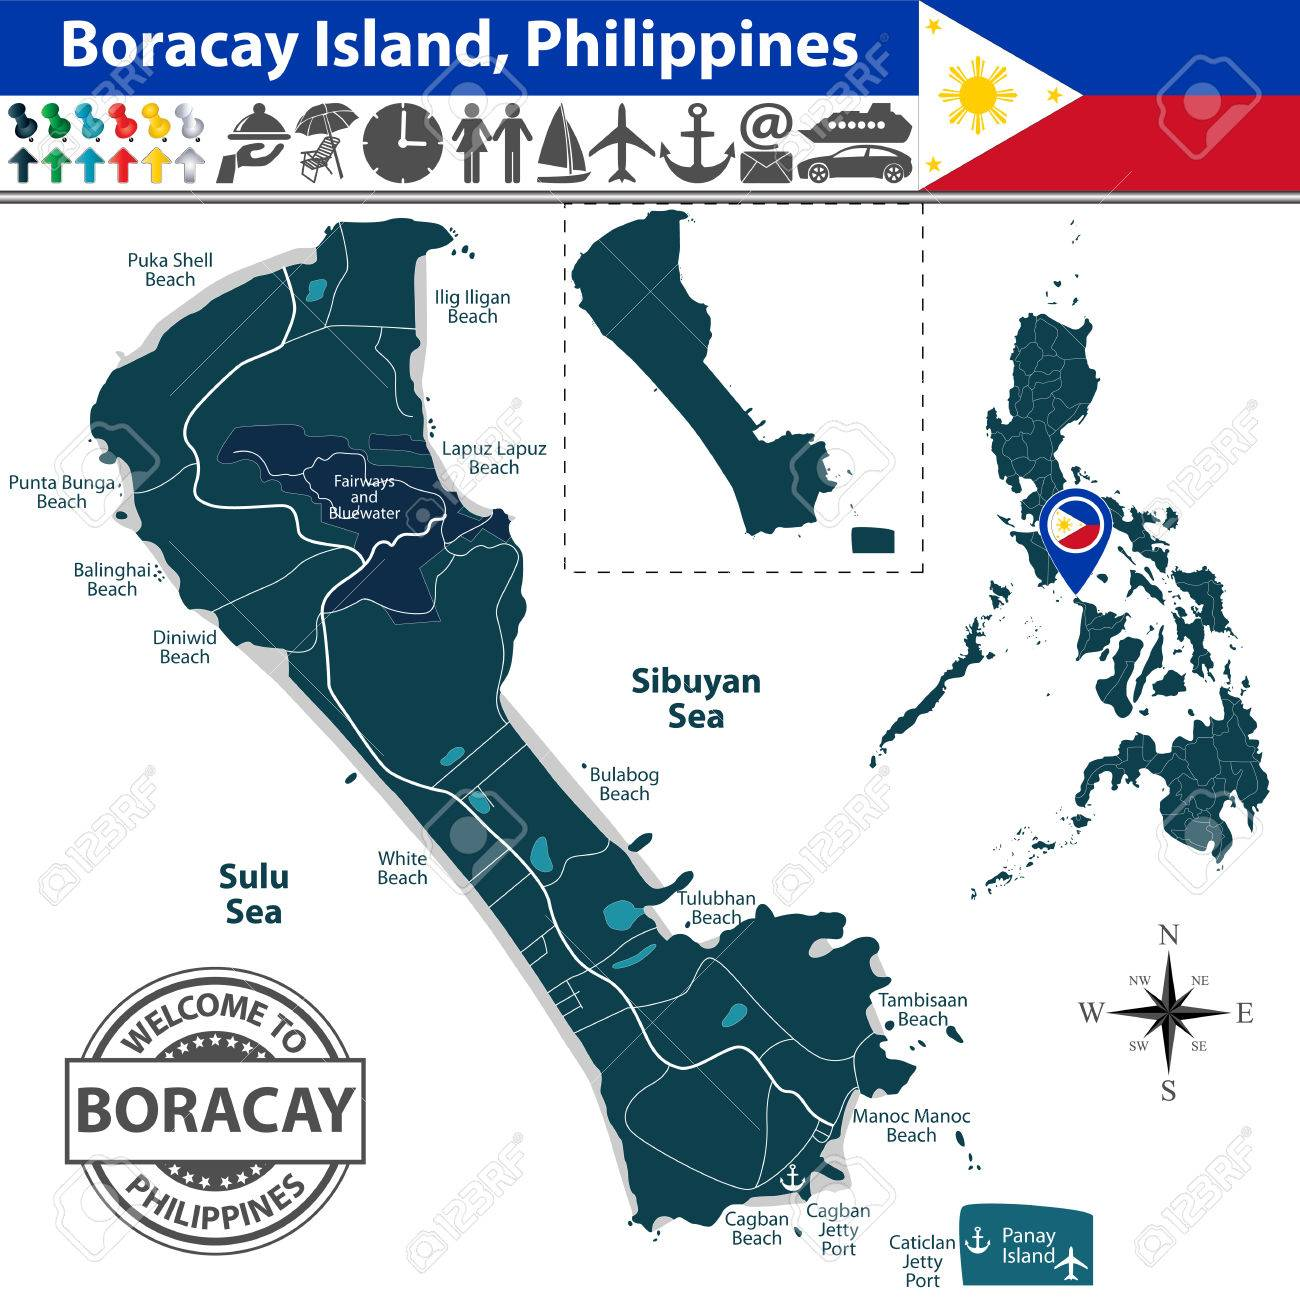 Boracay island, Philippines. Map contains beaches, roads and..